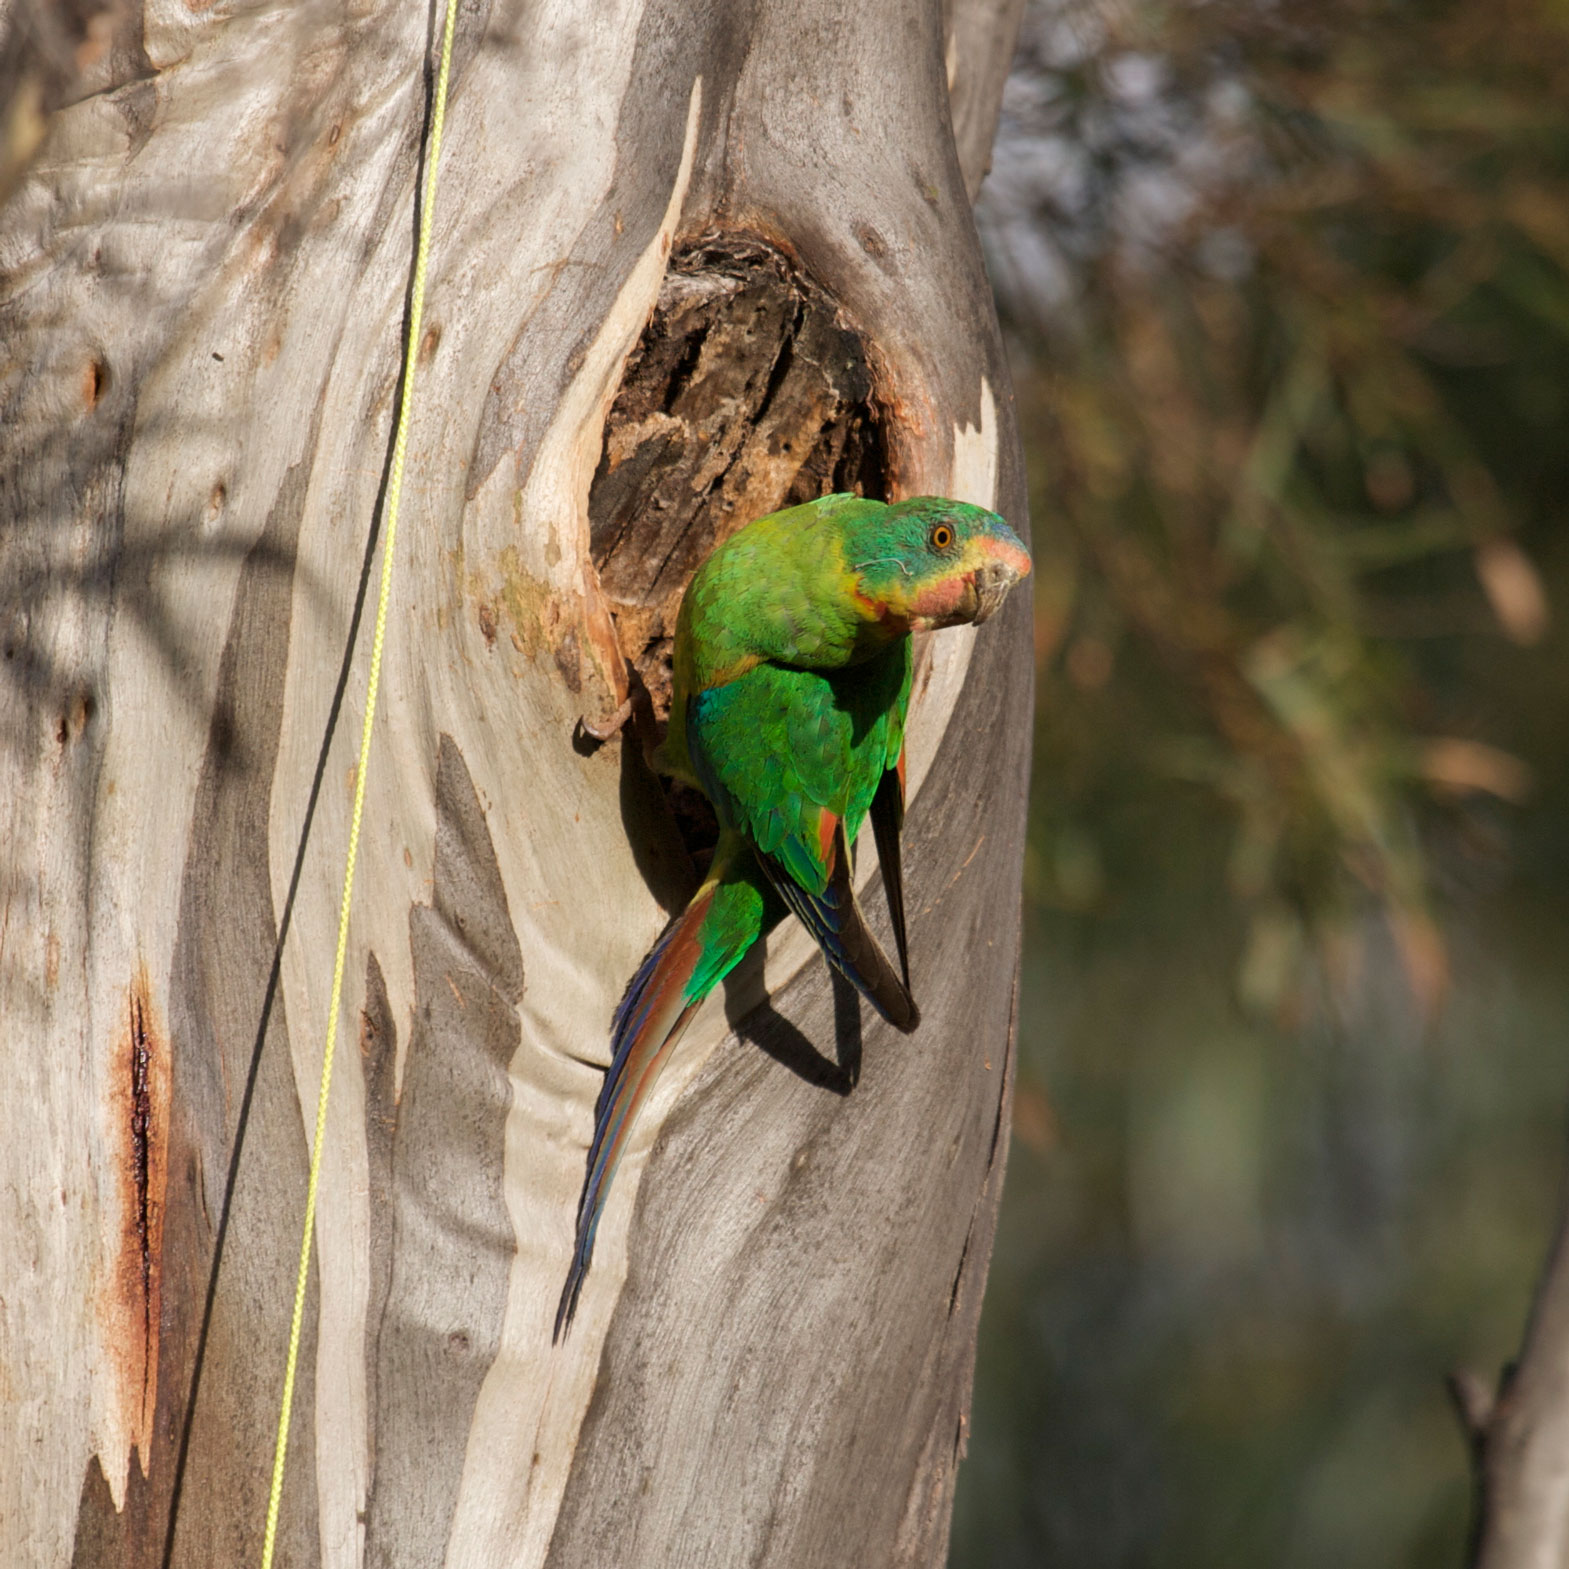 swift-parrot-adult-male-at-nest-hole.jpg